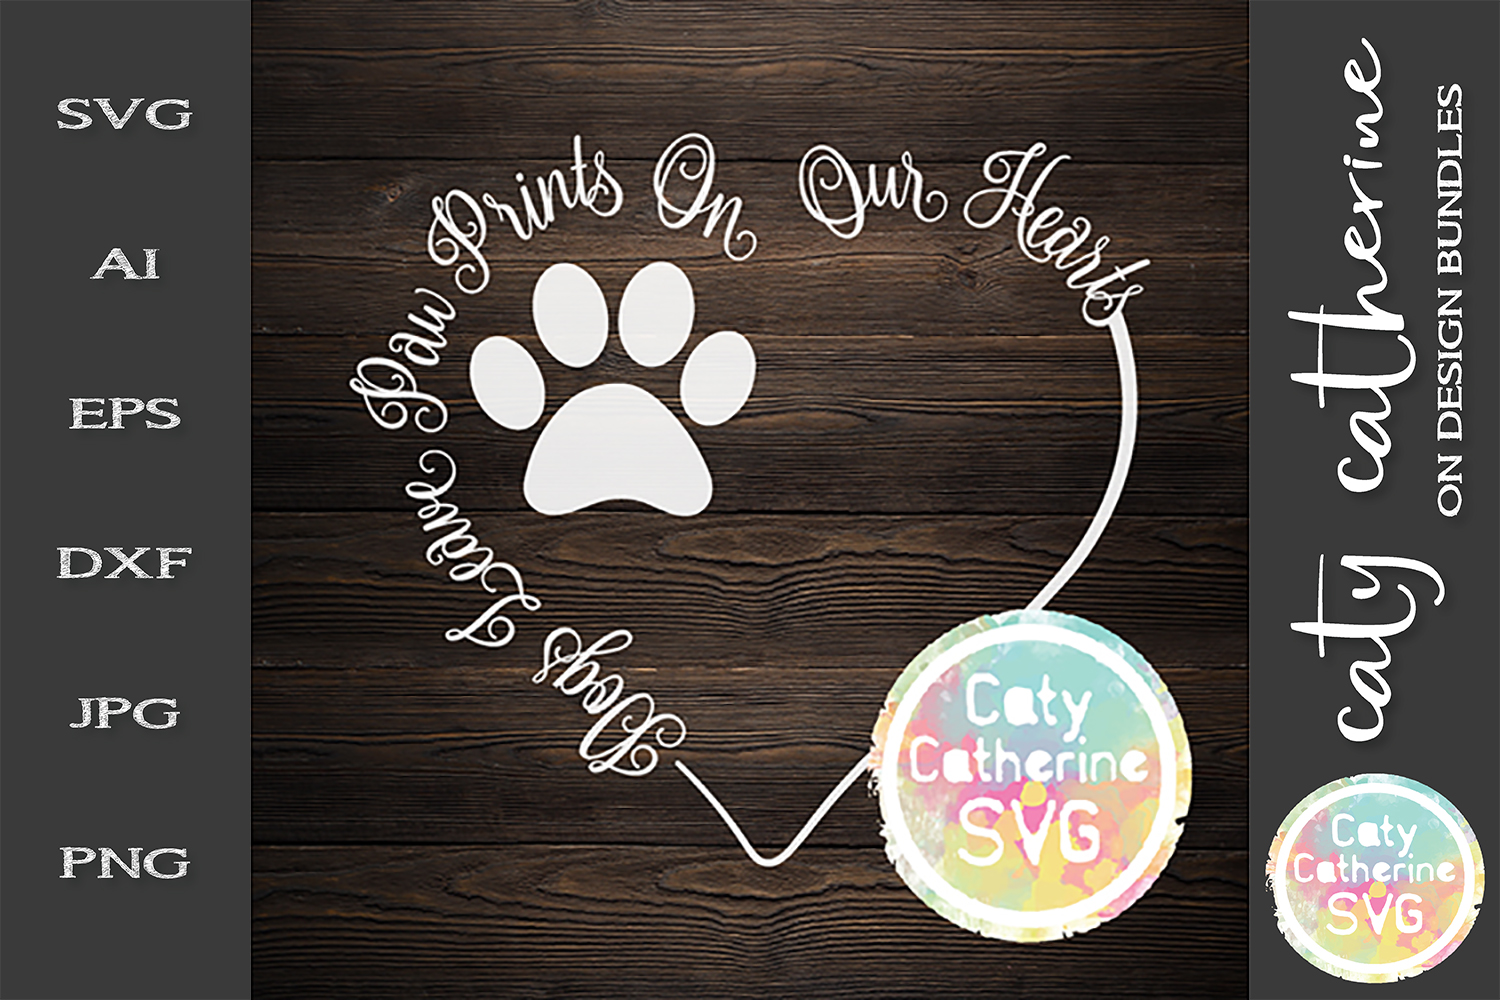 Dogs Leave Paw Prints On Our Hearts SVG Cut File example image 1